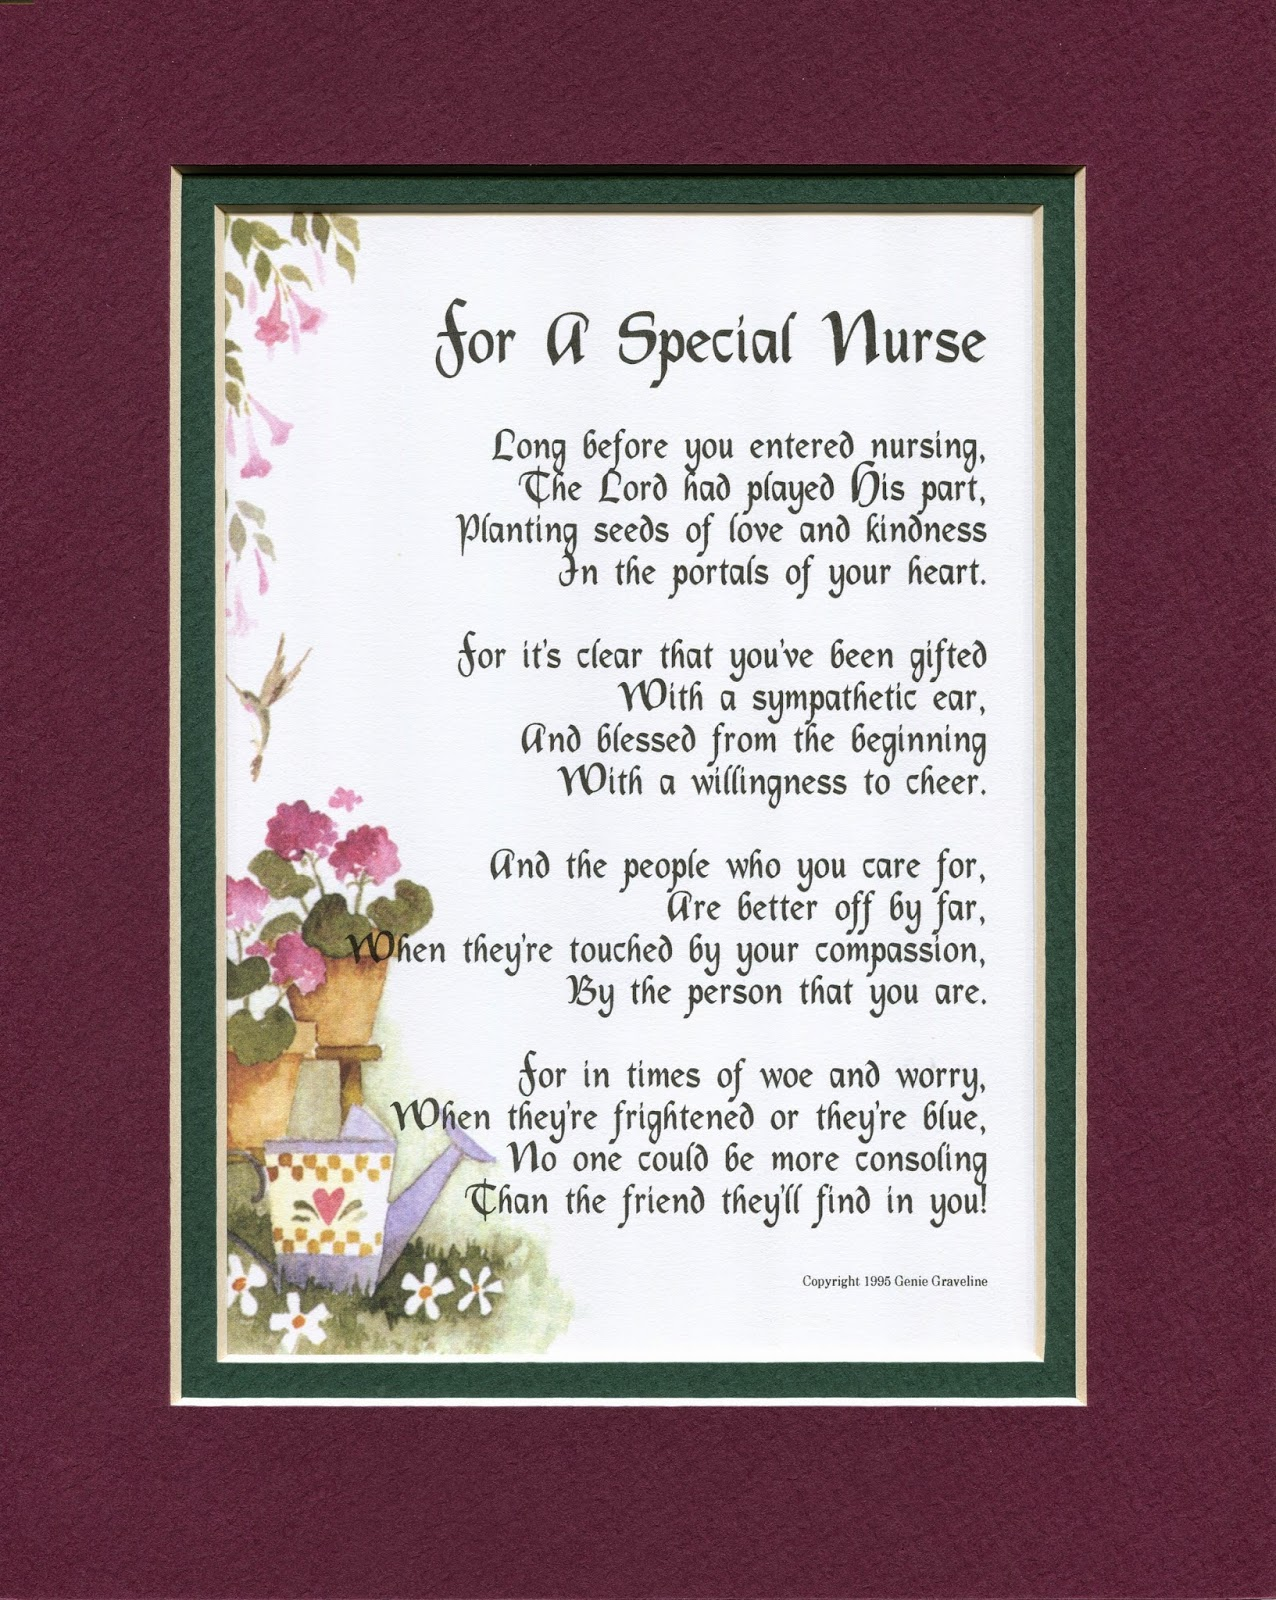 Special Wedding Gift For Niece : You can see this poem along with others at my website